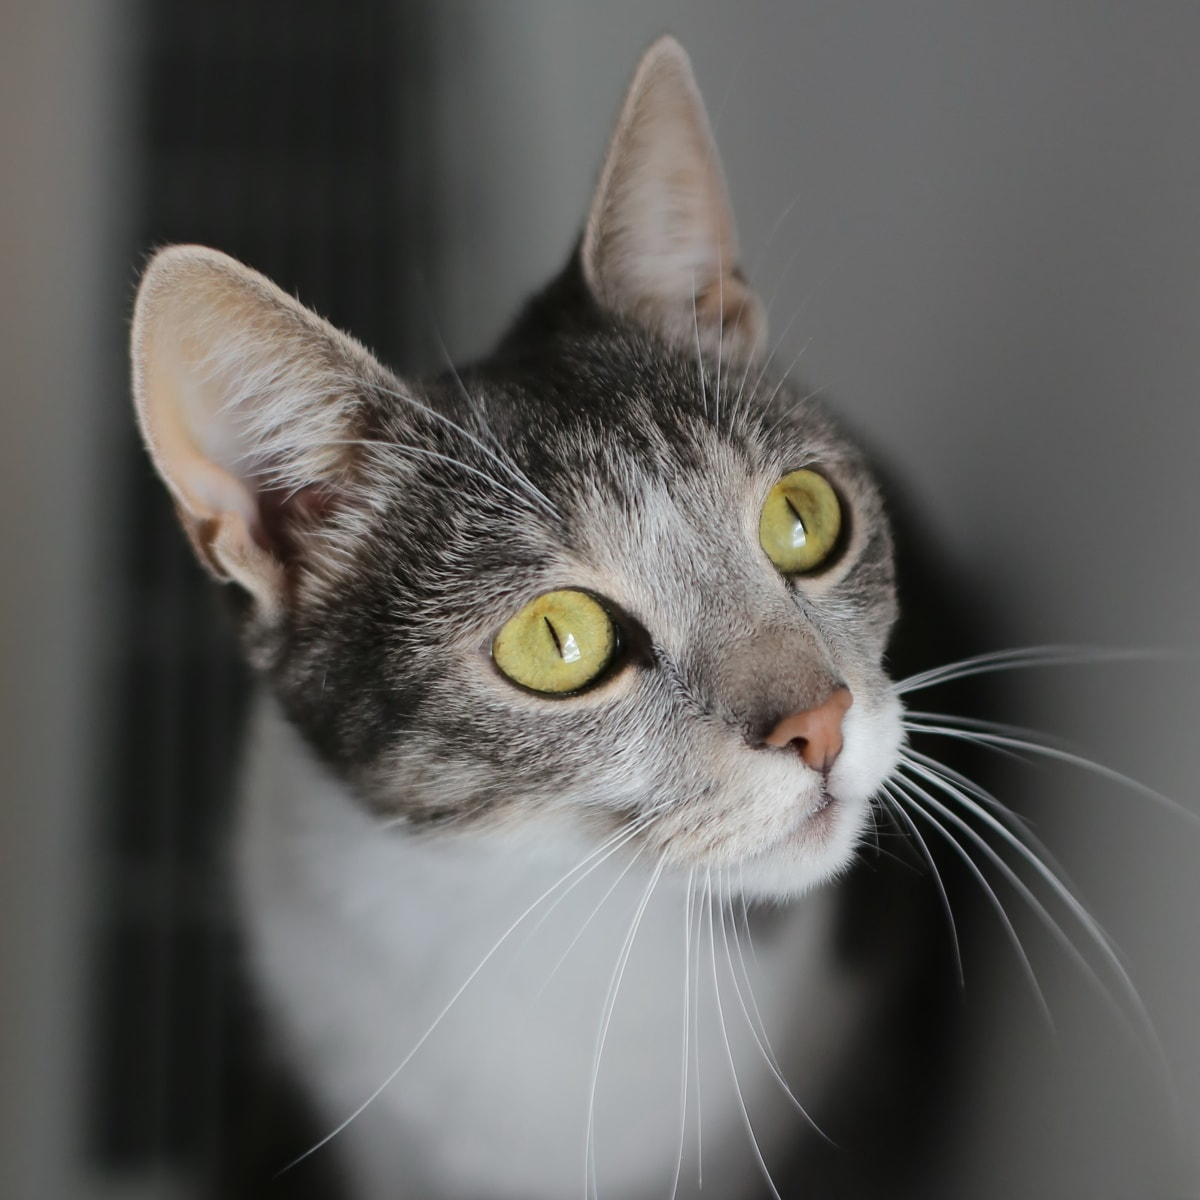 domestic cat, eyes, looking, whiskers, eyelashes, eye, cat, portrait, cute, domestic